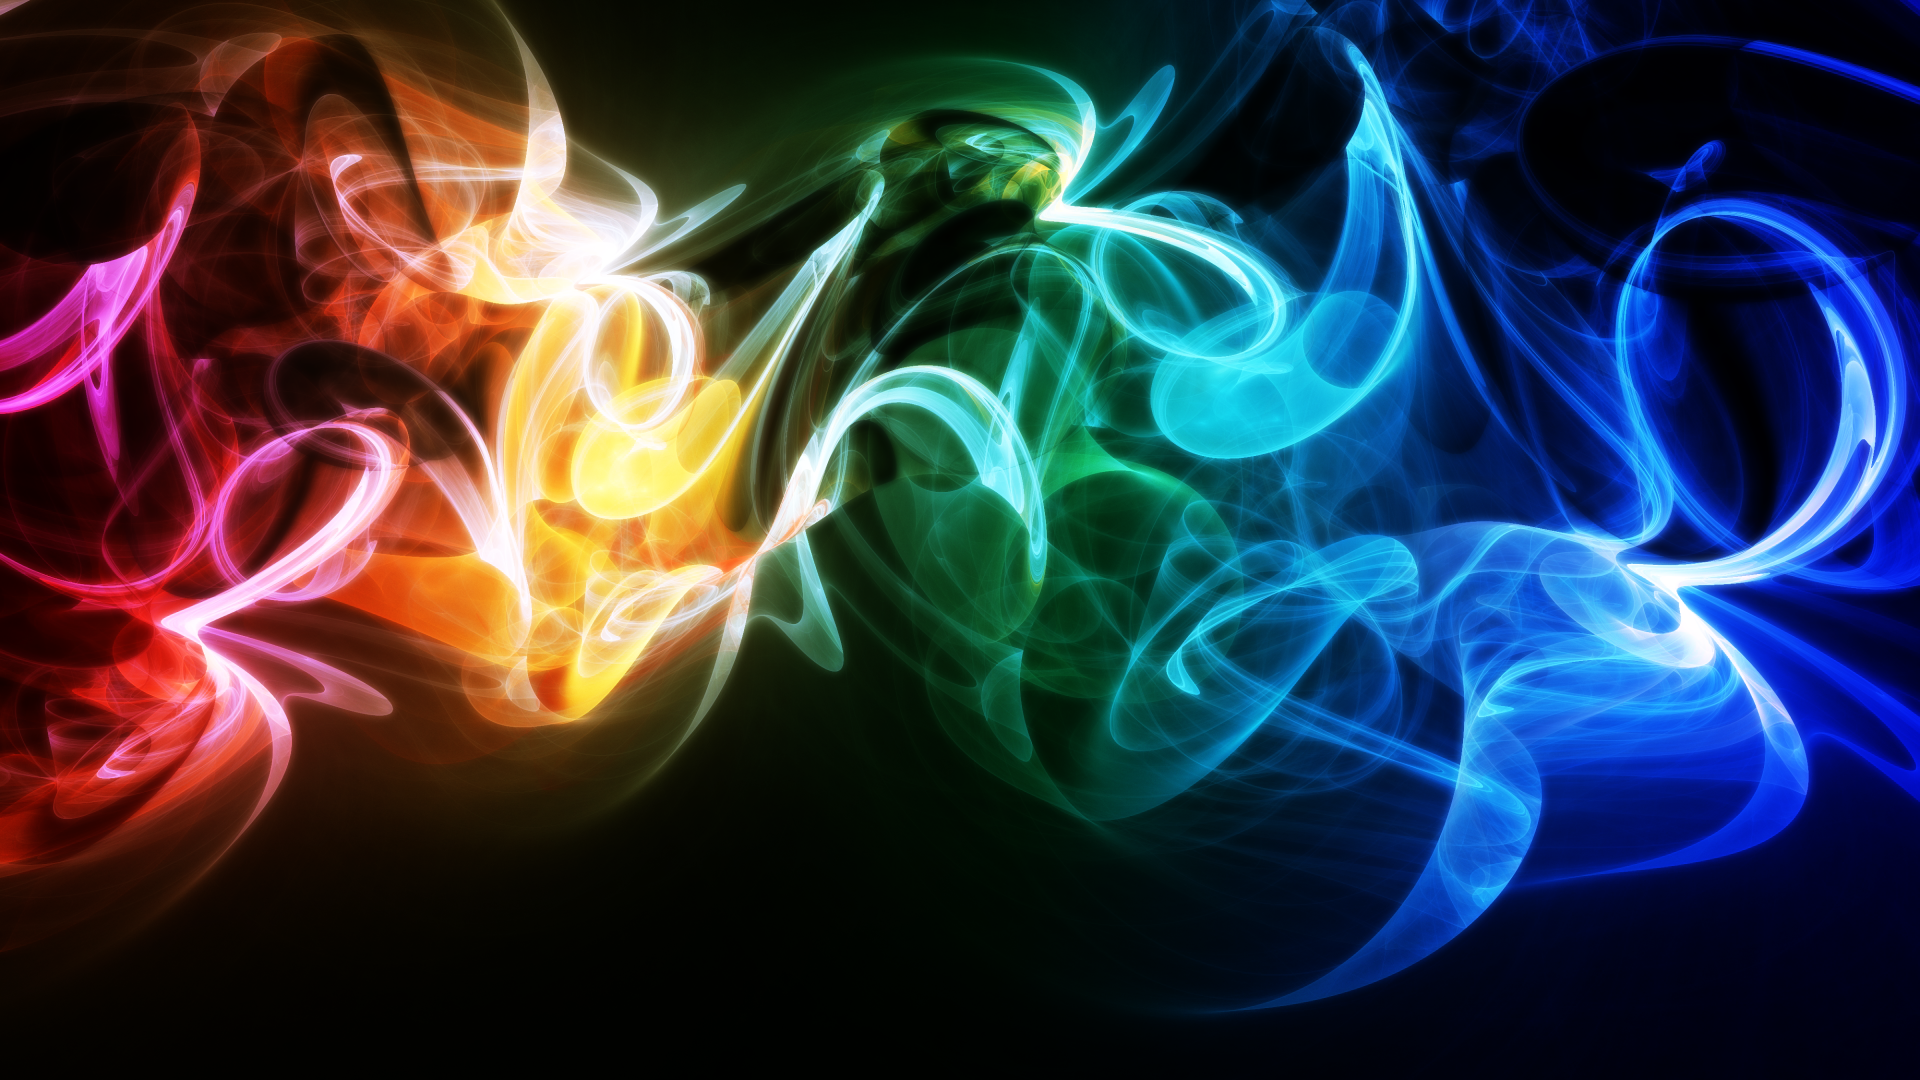 Hd wallpaper png - D Abstract Wallpapers Live Hd Wallpaper Hq Pictures Images